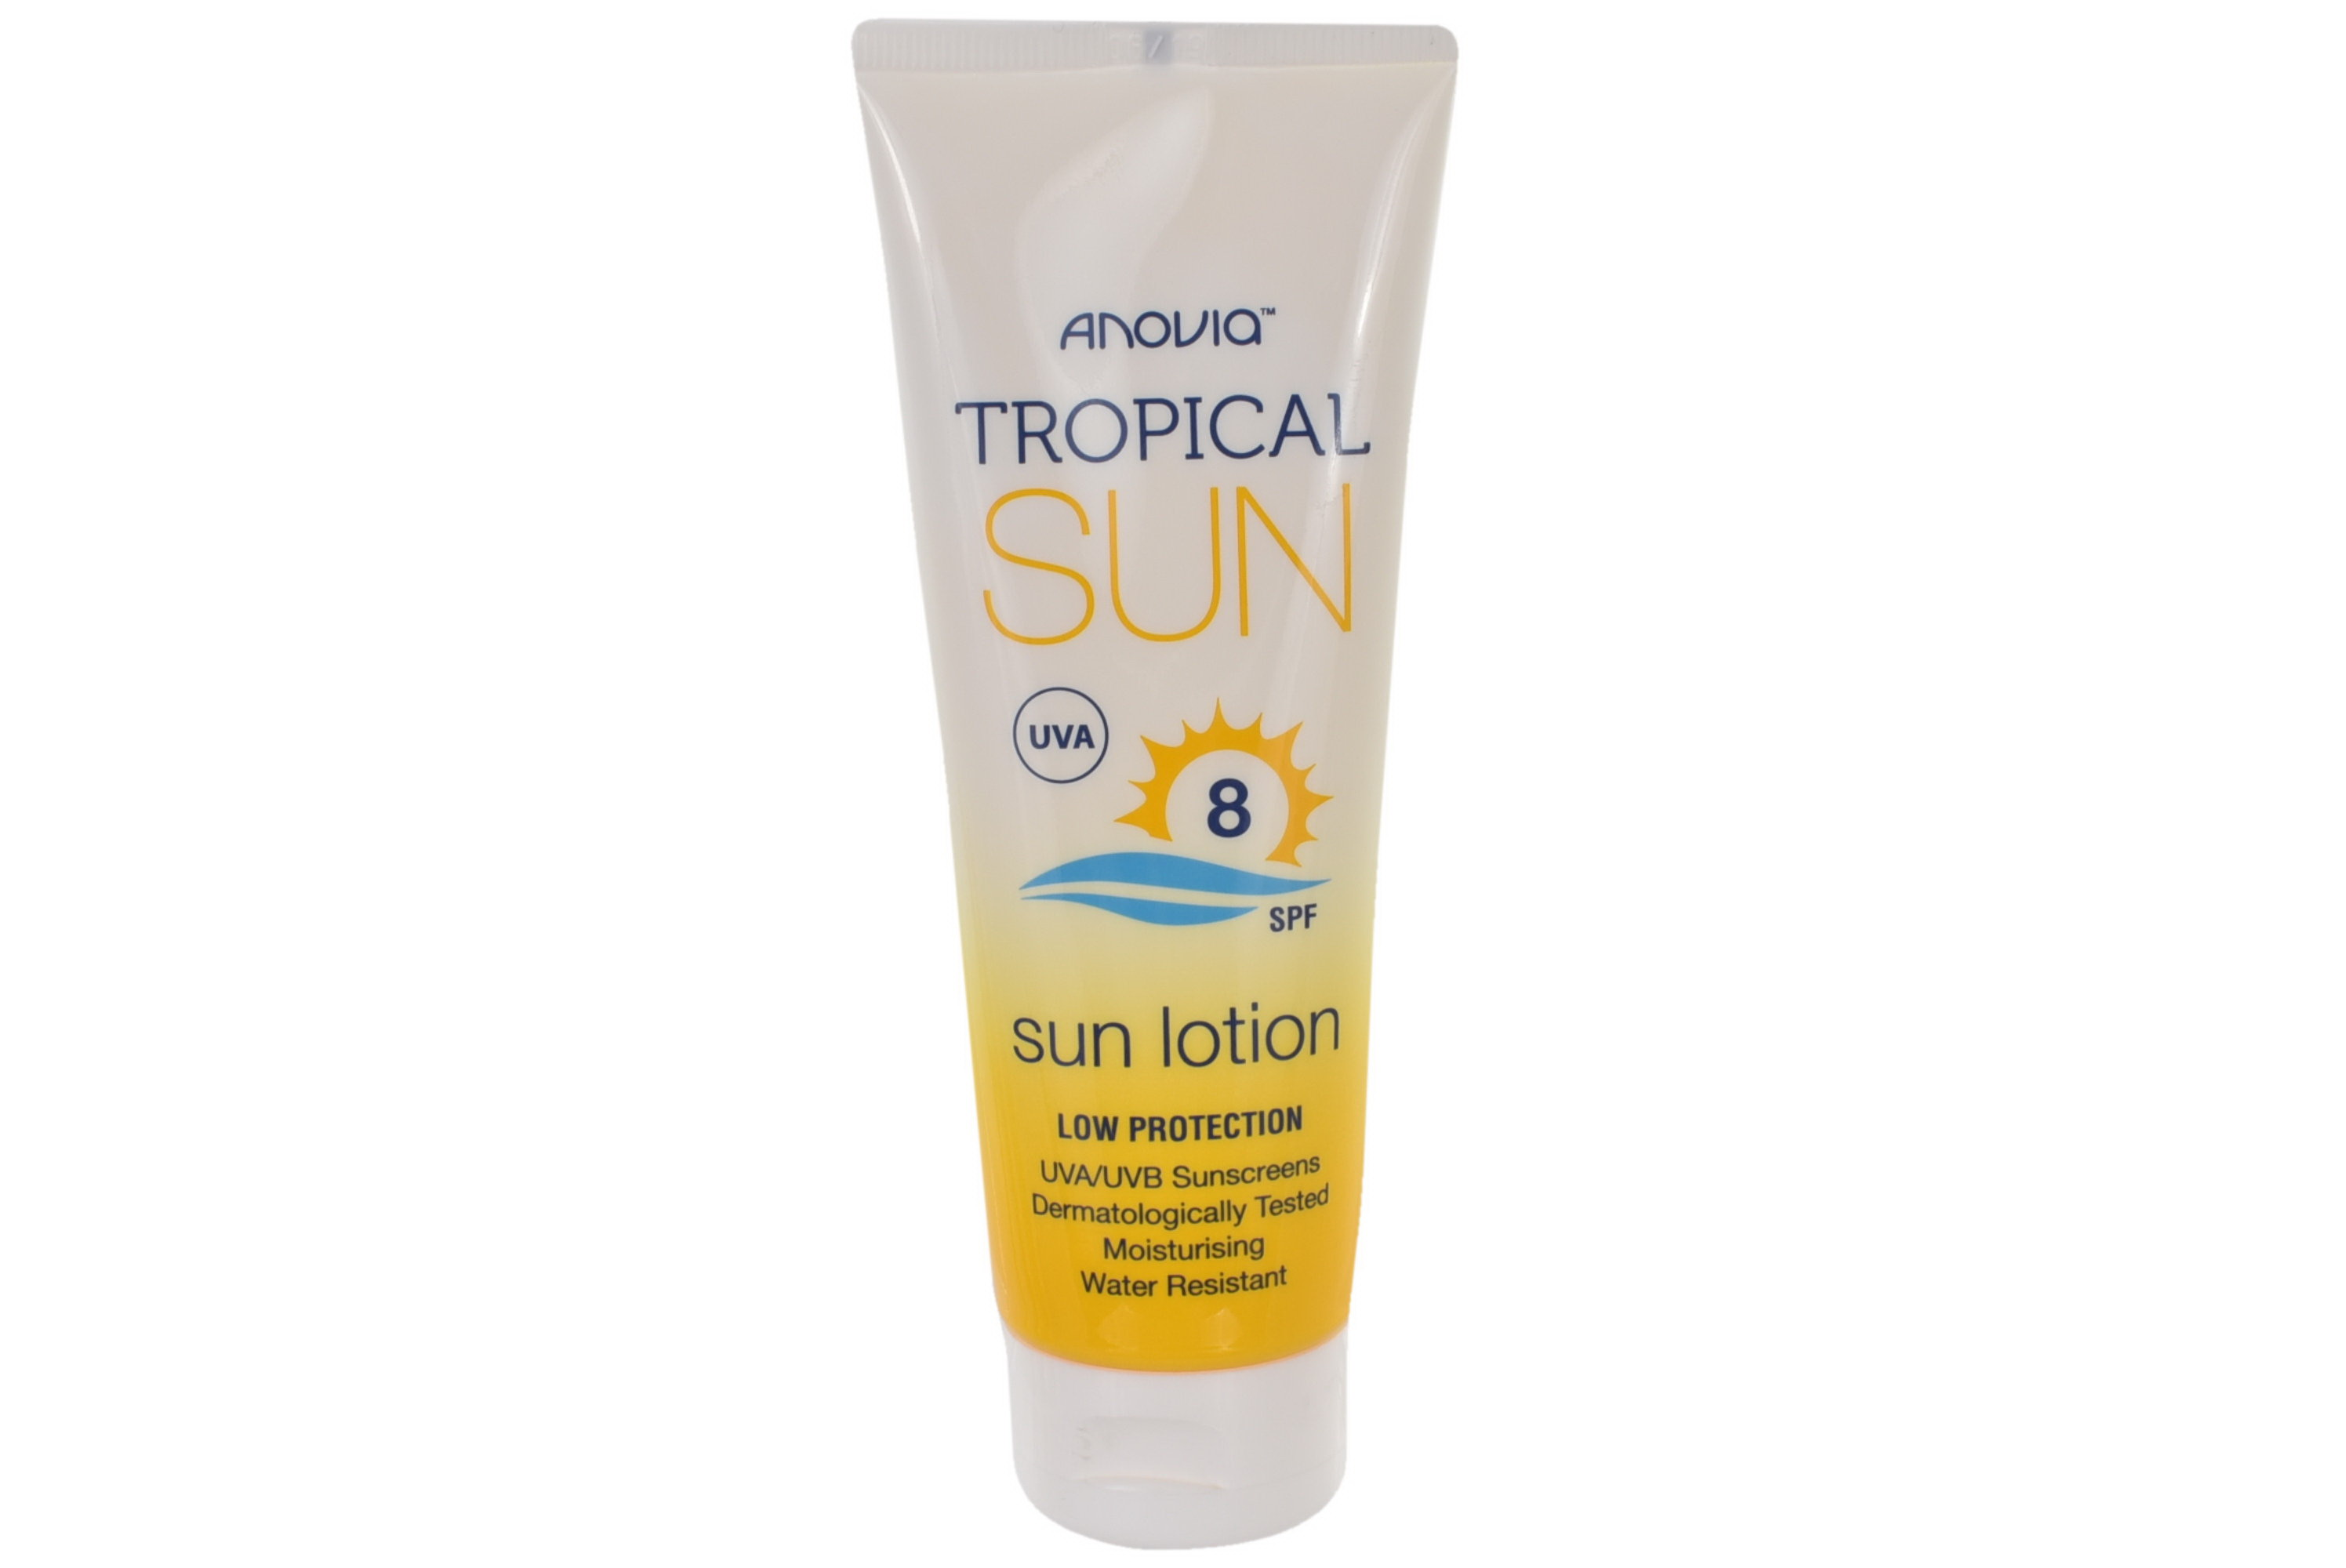 Tropical Sun Spf 8 Sun Lotion 100ml